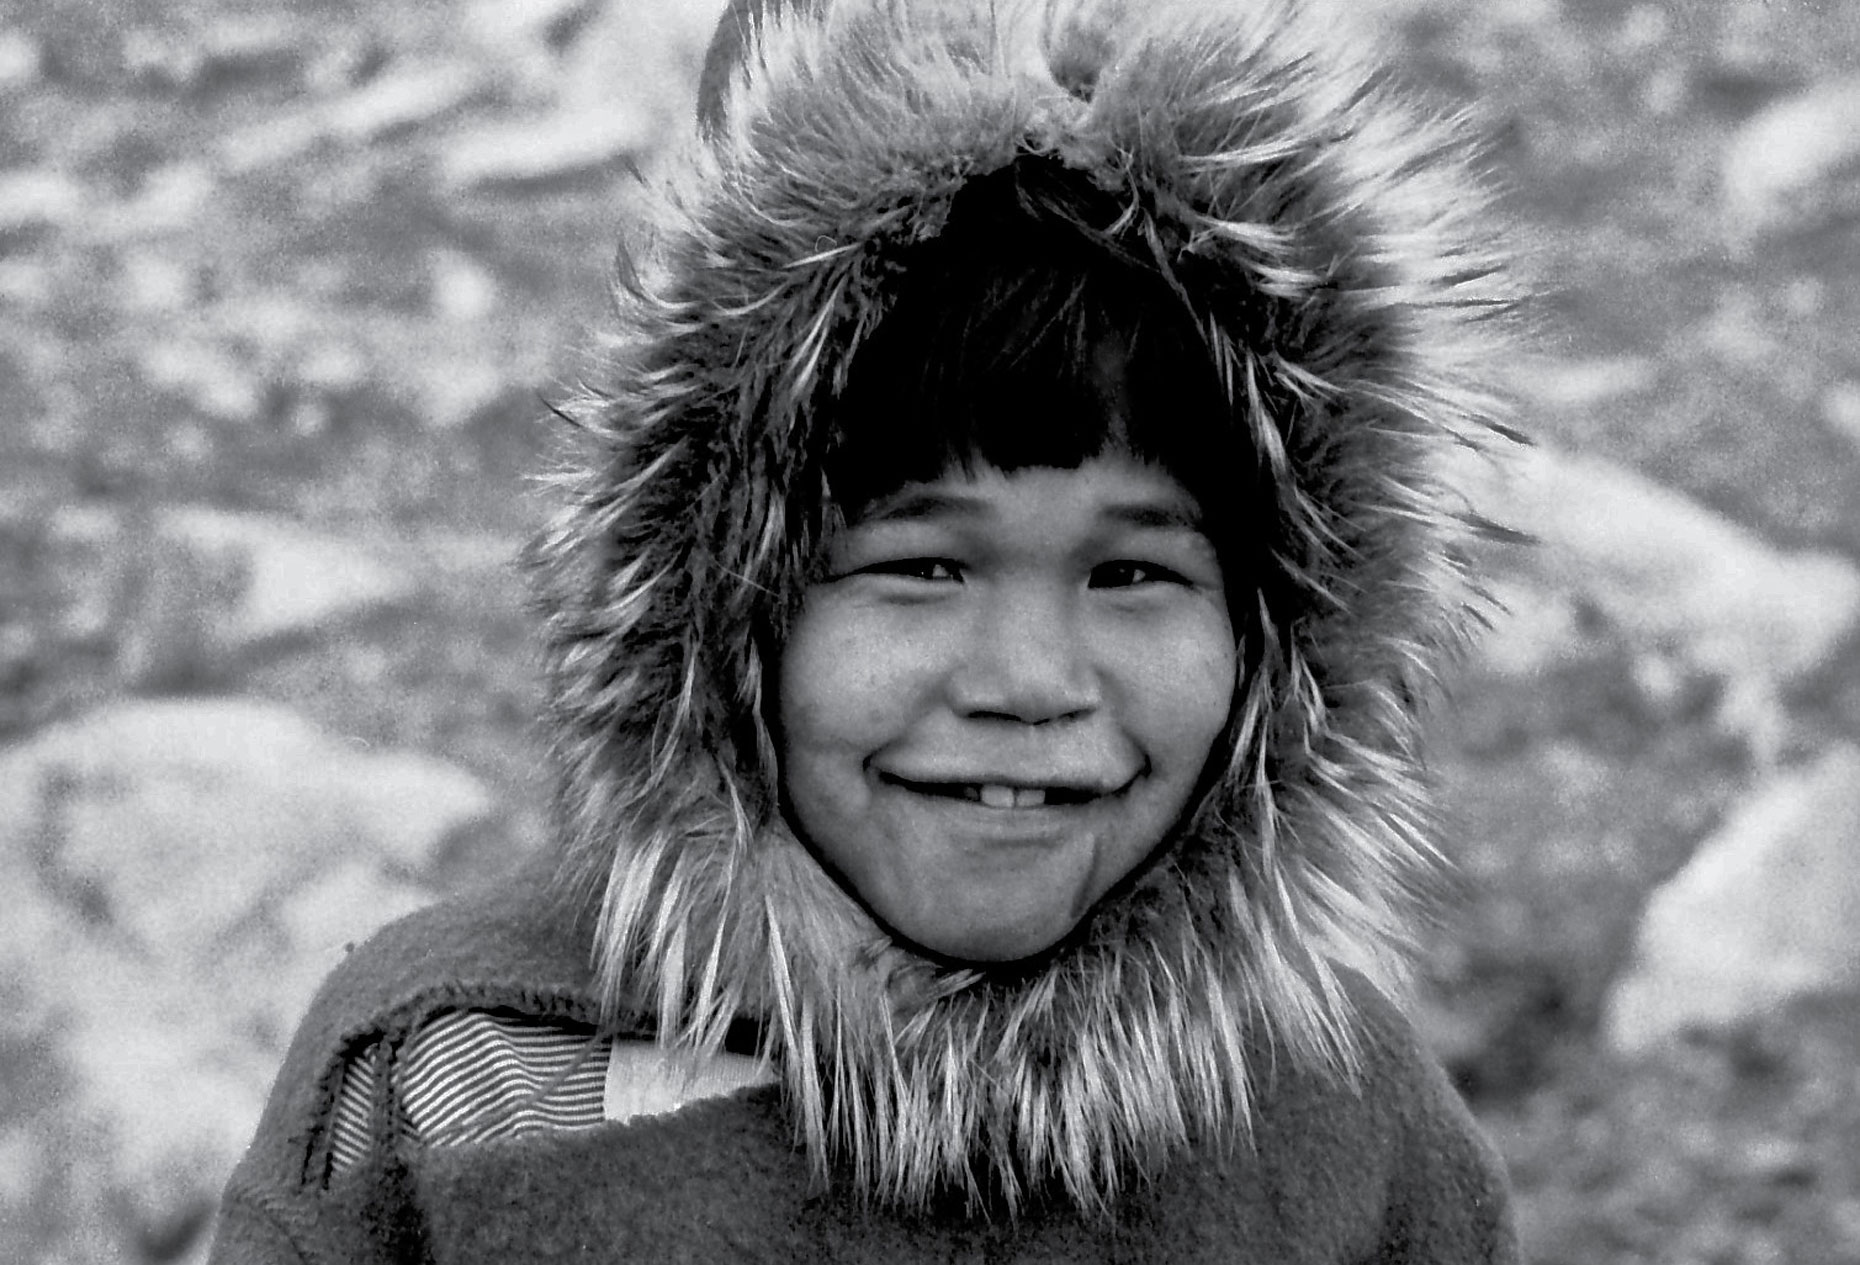 10-An-Inuit-boy,-Cape-Dorset,-Canadian-Arctic-